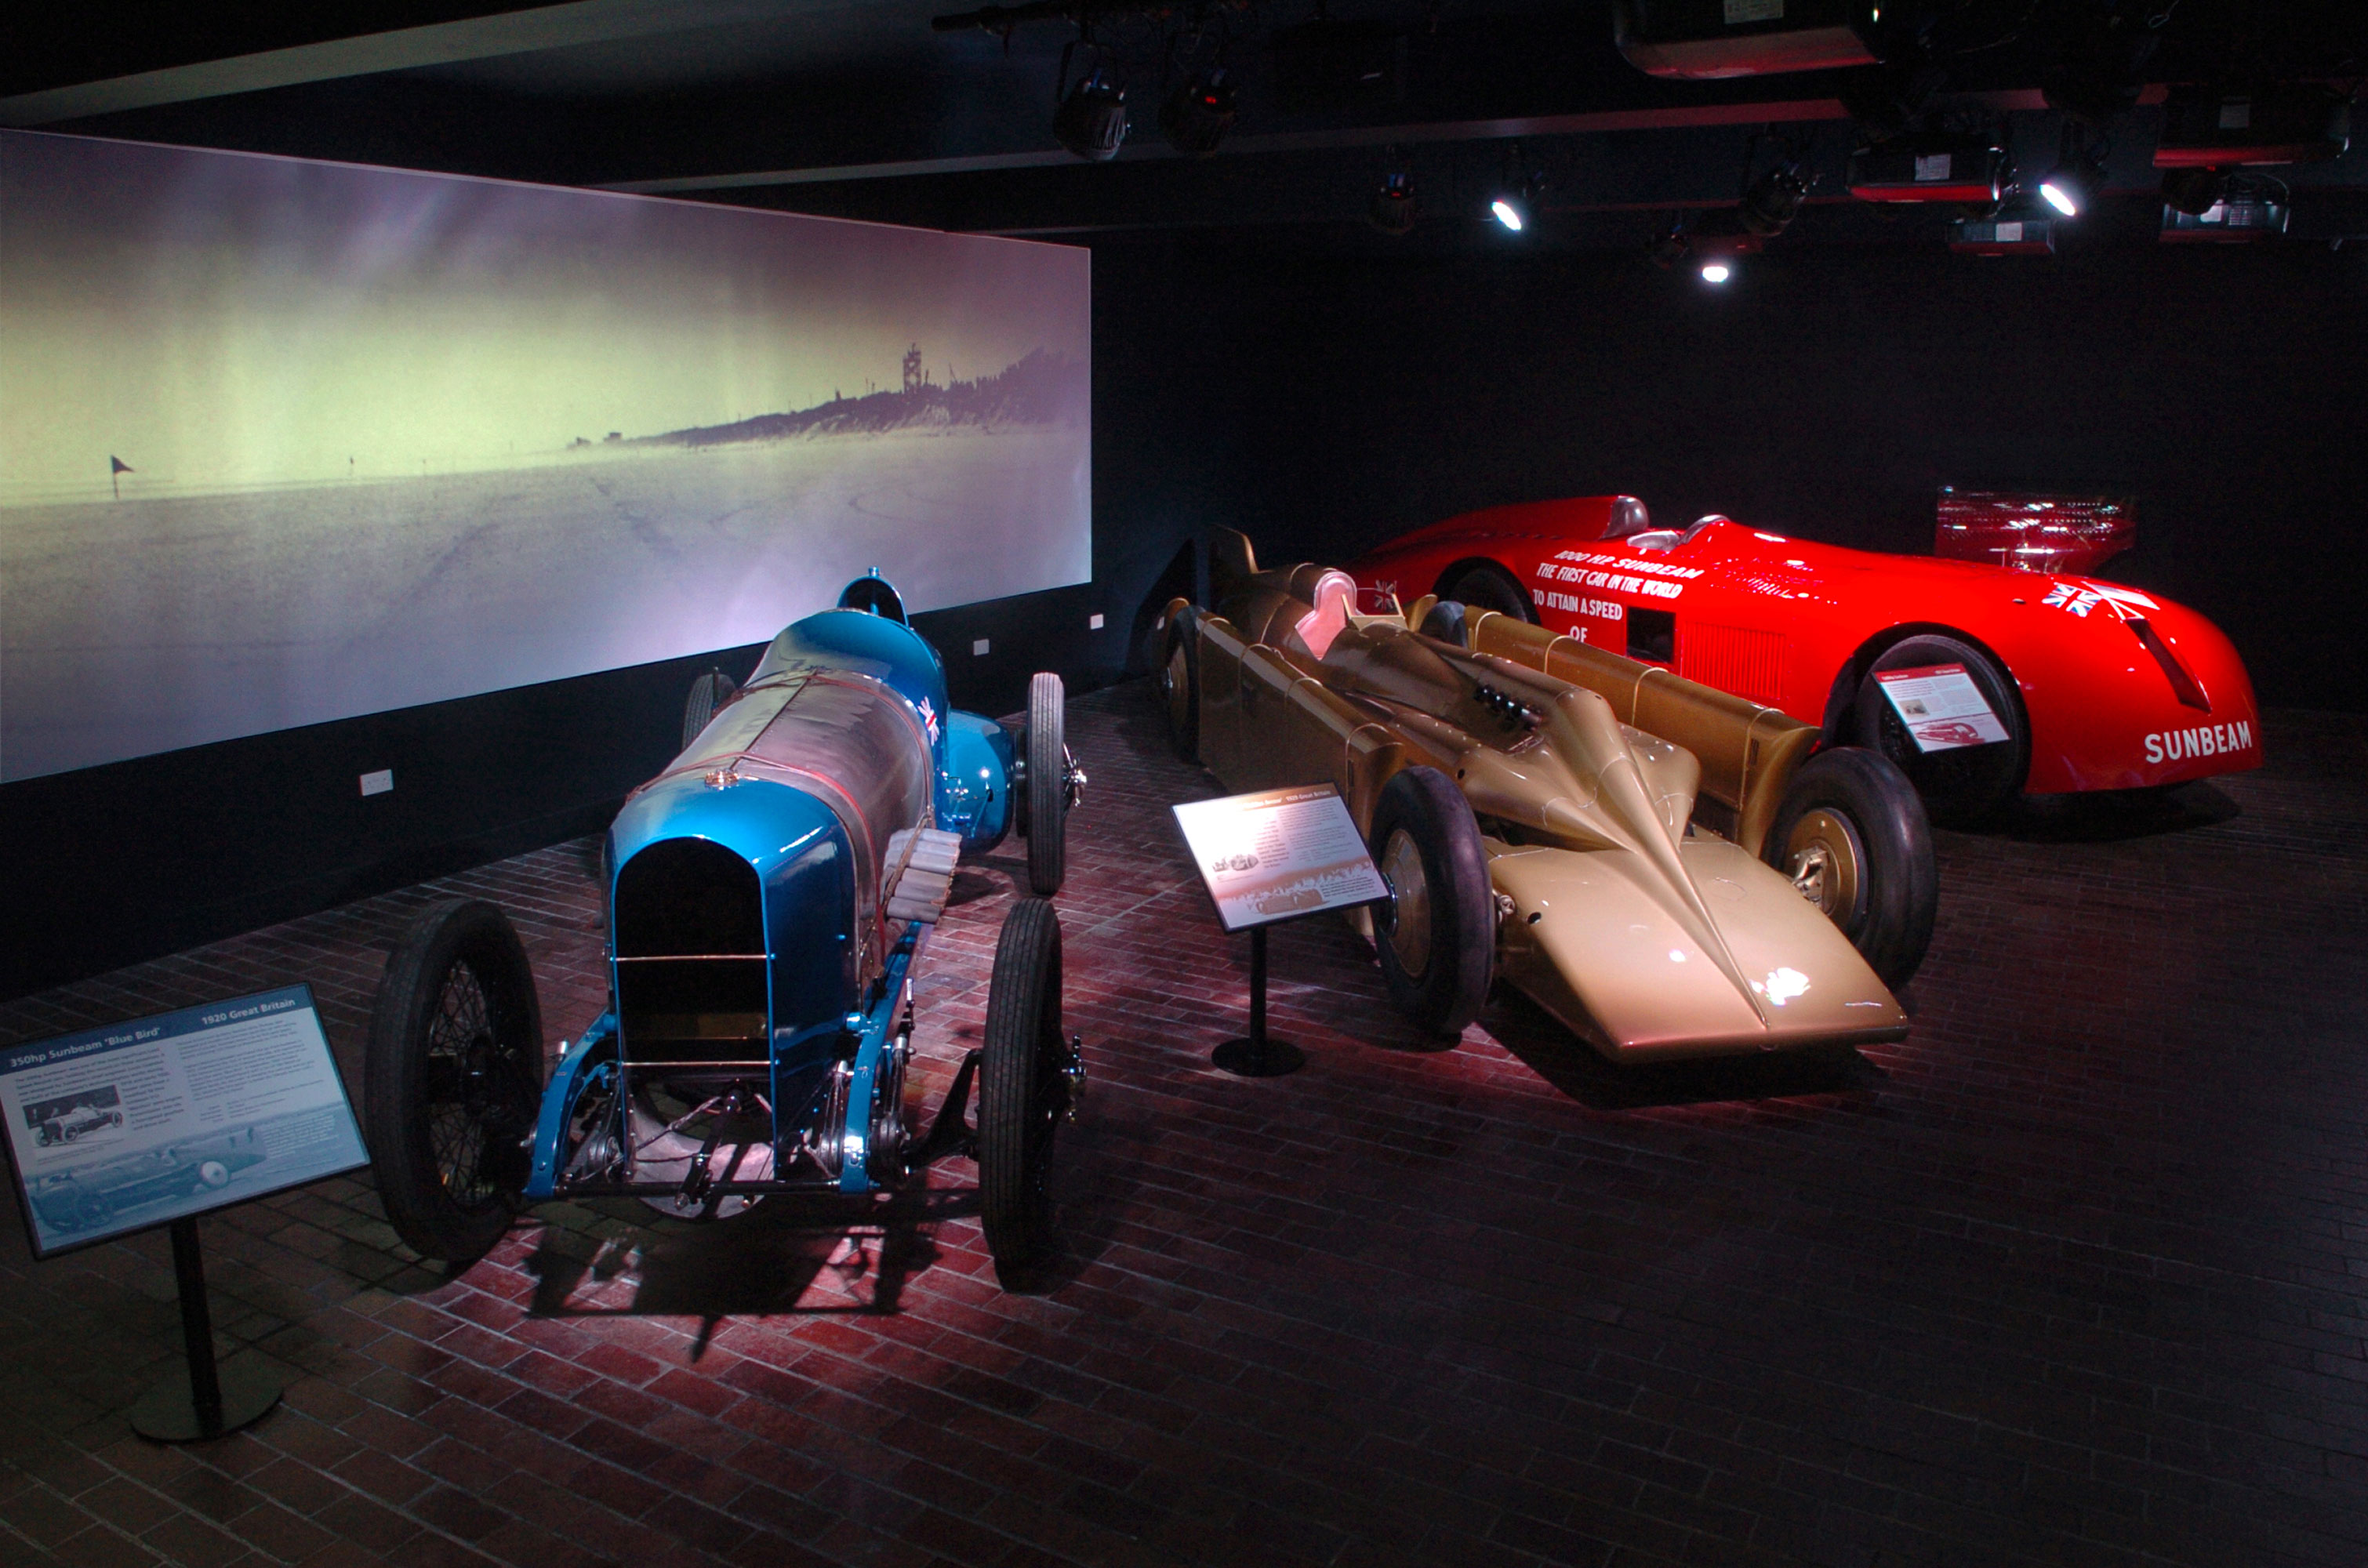 Land Speed Record vehicles on display in the National Motor Museum